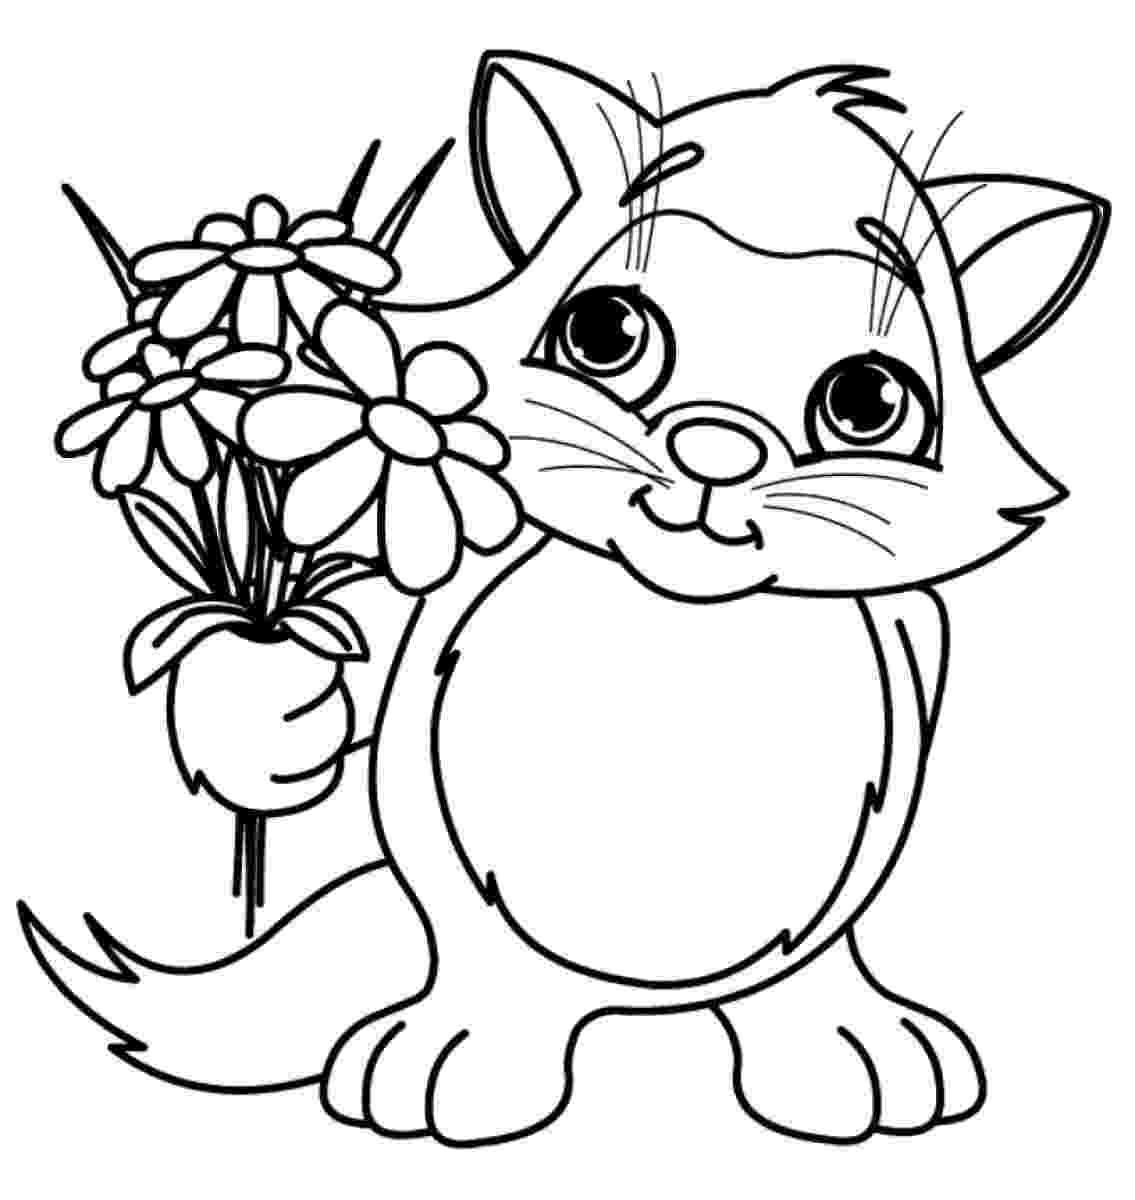 printable coloring pages plants spring flower coloring pages to download and print for free printable plants coloring pages